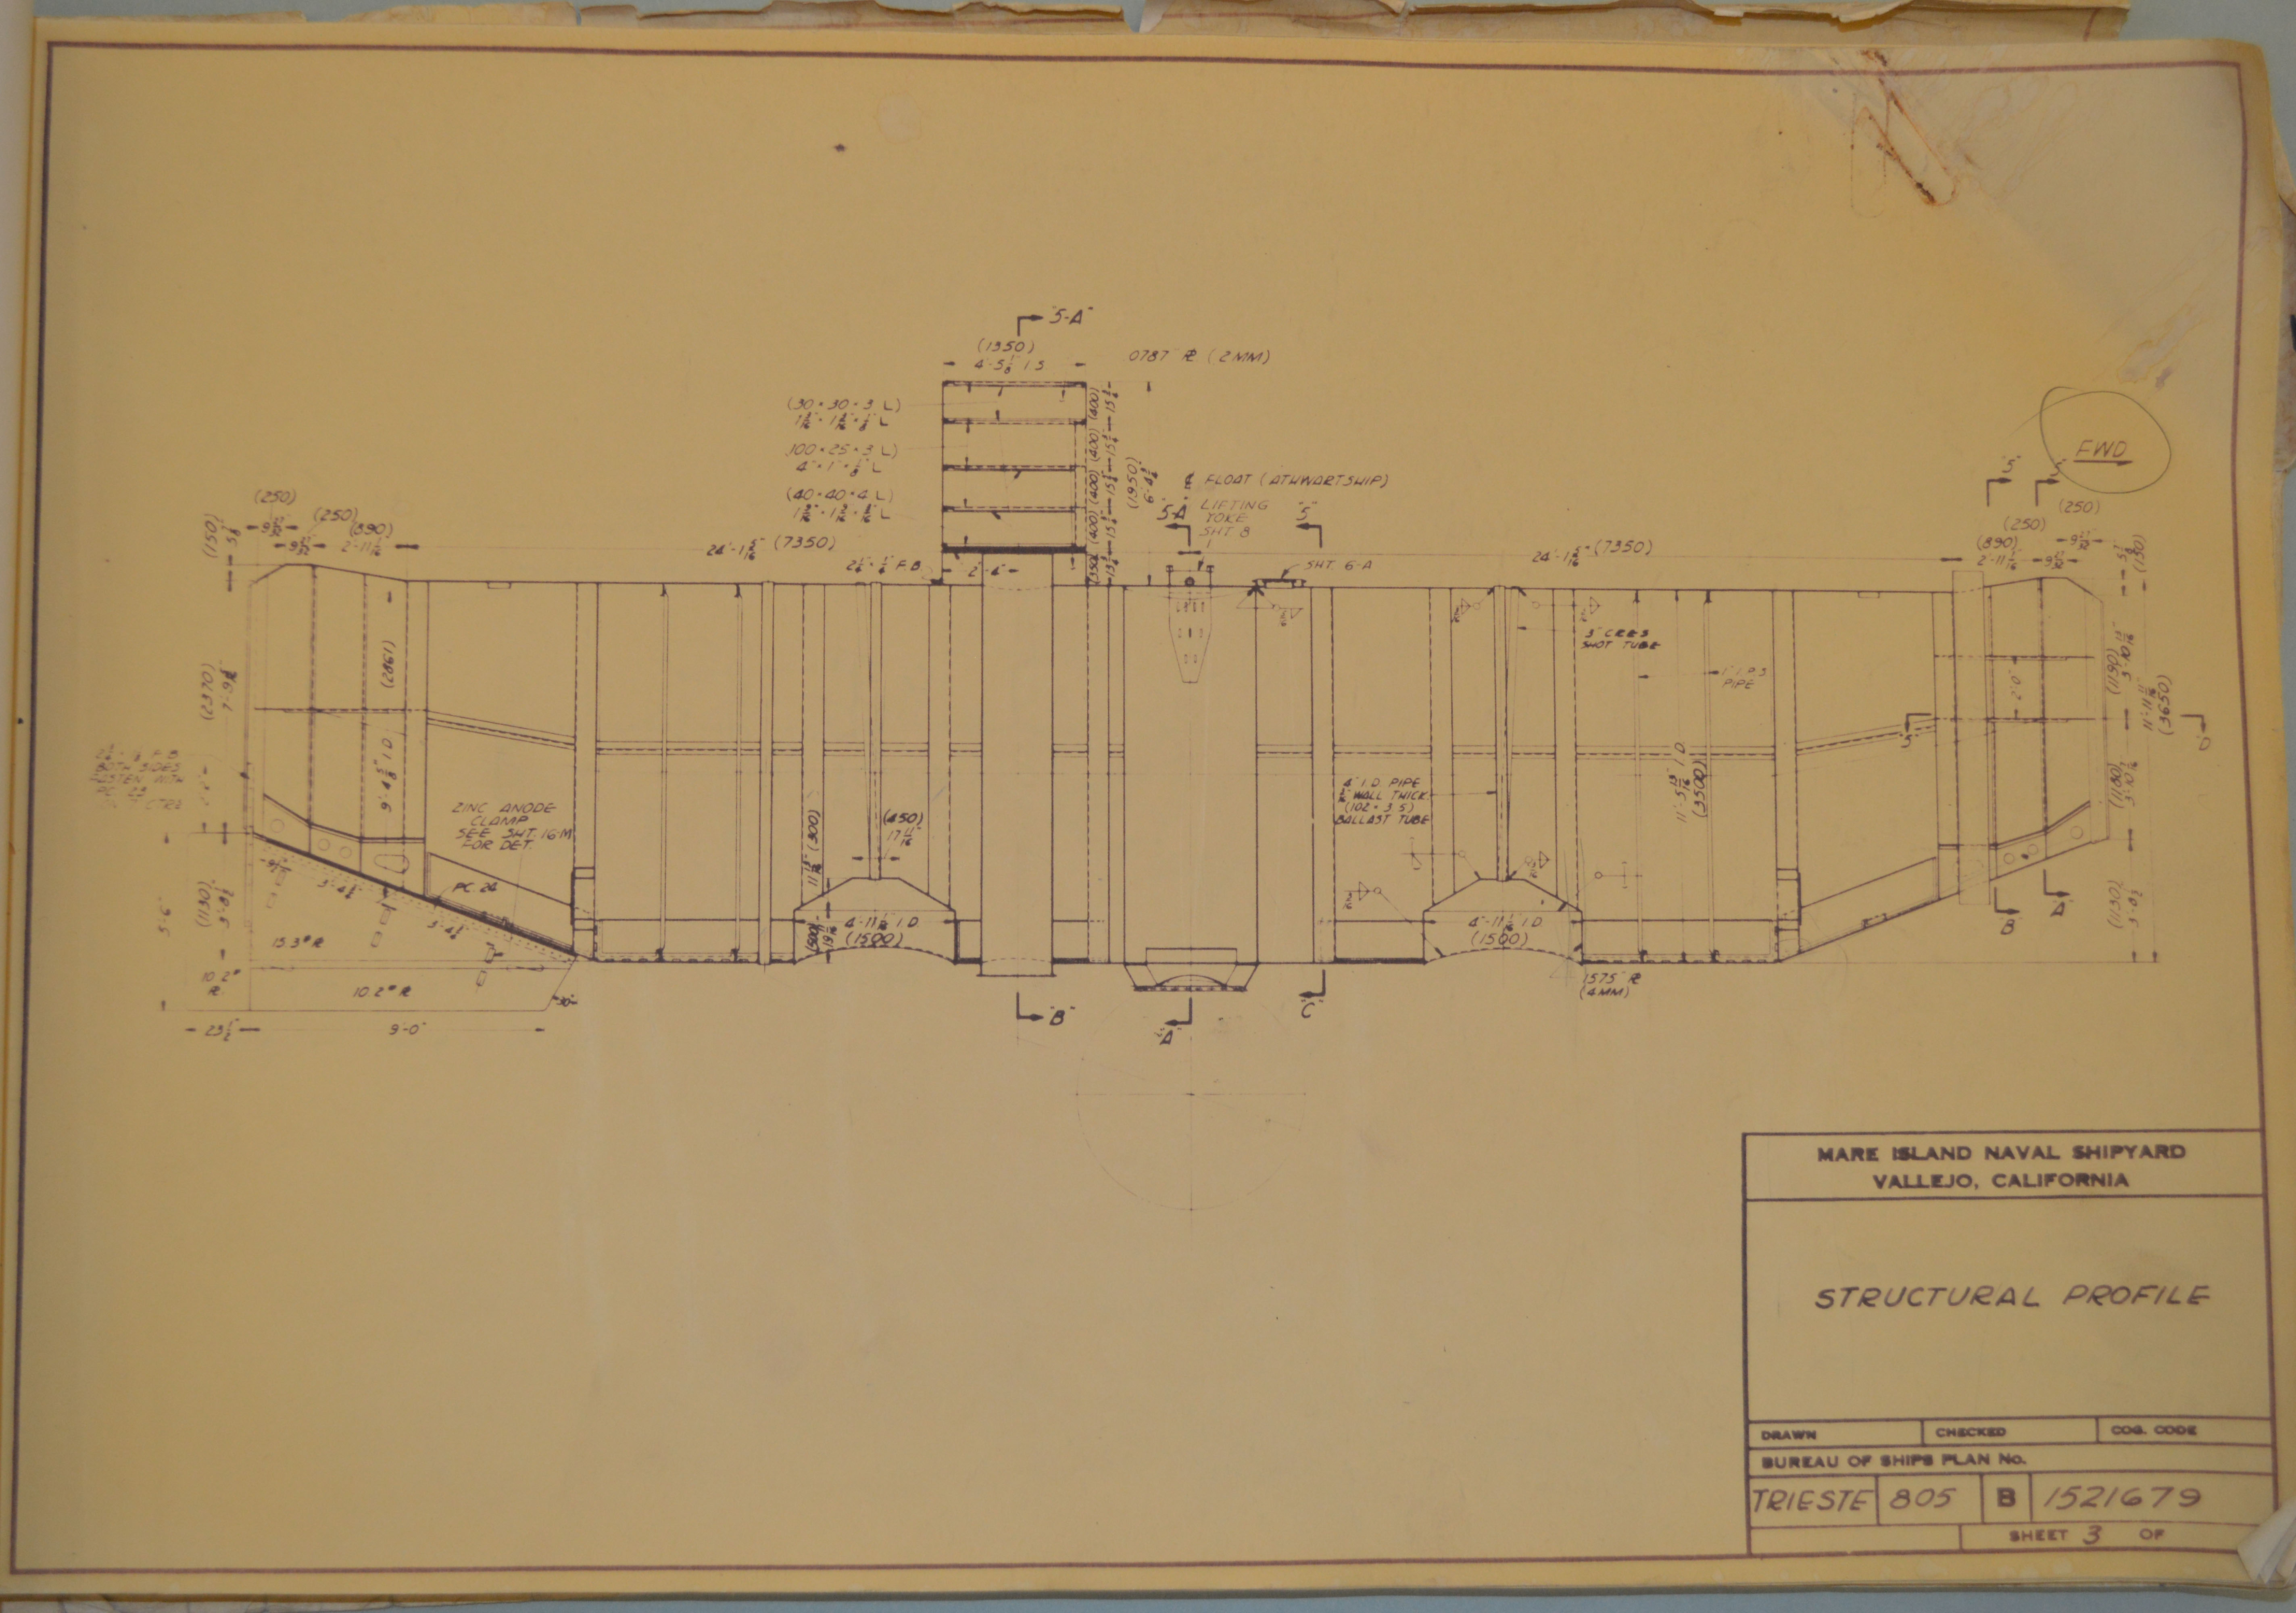 USS Trieste structural profile